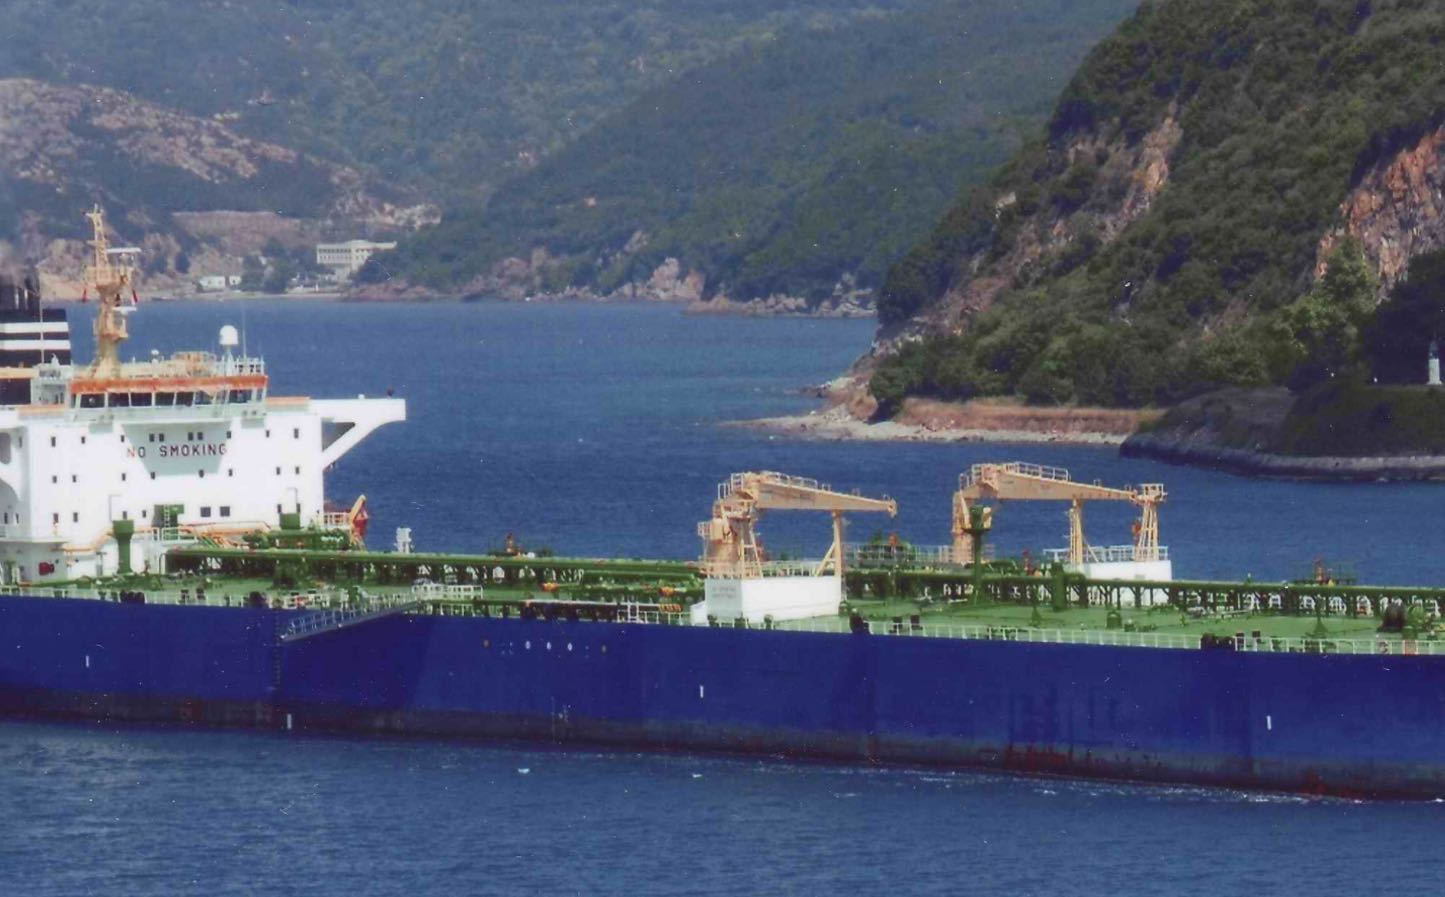 Vessel details for: AGRA (Crude Oil Tanker) - IMO 9166742